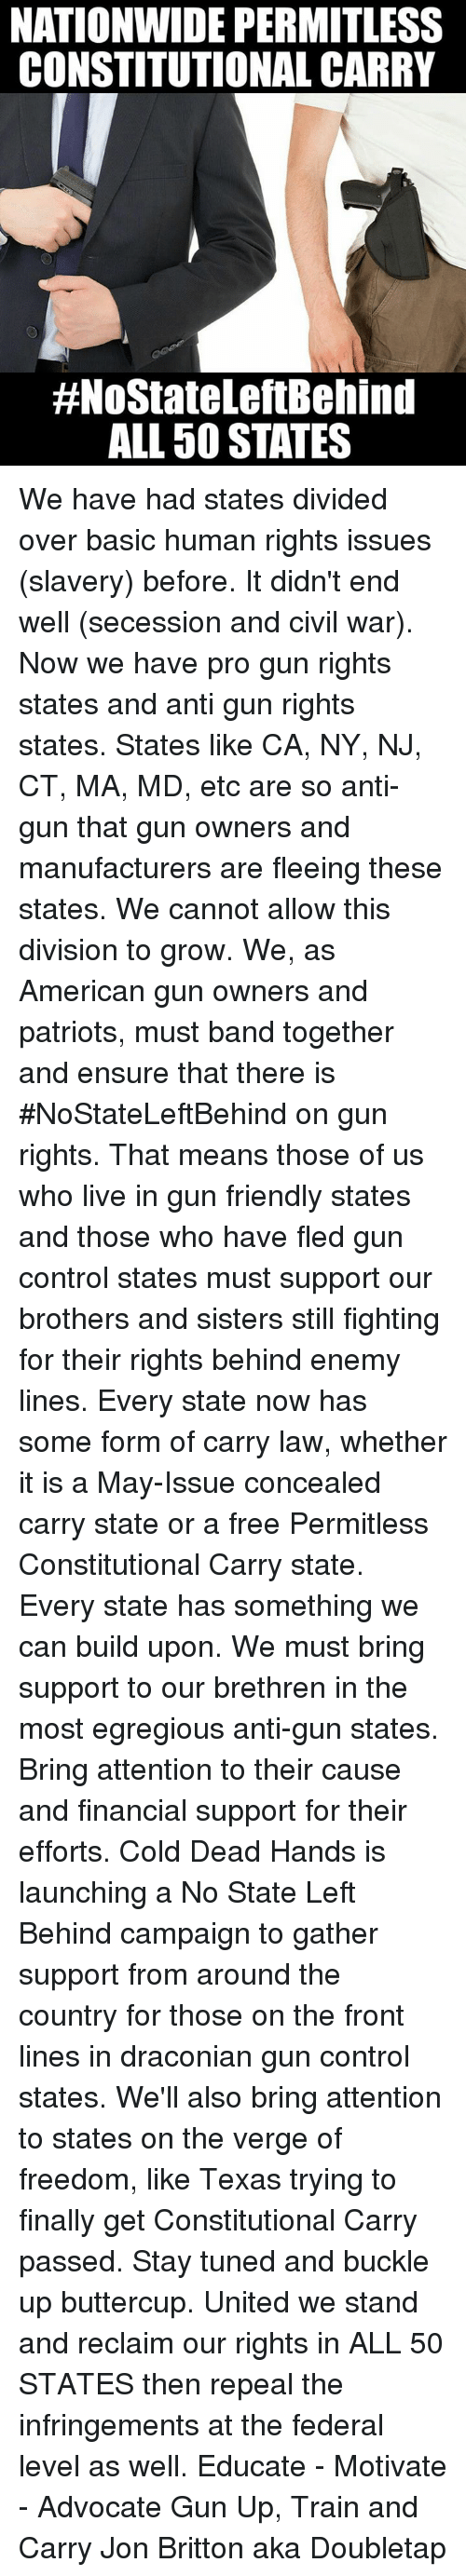 United We Stand: NATIONWIDE PERMITLESS  CONSTITUTIONAL CARRY  #NoStateLeftBehind  ALL 50 STATES We have had states divided over basic human rights issues (slavery) before. It didn't end well (secession and civil war). Now we have pro gun rights states and anti gun rights states. States like CA, NY, NJ, CT, MA, MD, etc are so anti-gun that gun owners and manufacturers are fleeing these states.  We cannot allow this division to grow. We, as American gun owners and patriots, must band together and ensure that there is #NoStateLeftBehind on gun rights. That means those of us who live in gun friendly states and those who have fled gun control states must support our brothers and sisters still fighting for their rights behind enemy lines.  Every state now has some form of carry law, whether it is a May-Issue concealed carry state or a free Permitless Constitutional Carry state. Every state has something we can build upon. We must bring support to our brethren in the most egregious anti-gun states. Bring attention to their cause and financial support for their efforts.  Cold Dead Hands is launching a No State Left Behind campaign to gather support from around the country for those on the front lines in draconian gun control states. We'll also bring attention to states on the verge of freedom, like Texas trying to finally get Constitutional Carry passed.  Stay tuned and buckle up buttercup. United we stand and reclaim our rights in ALL 50 STATES then repeal the infringements at the federal level as well.  Educate - Motivate - Advocate  Gun Up, Train and Carry  Jon Britton aka Doubletap